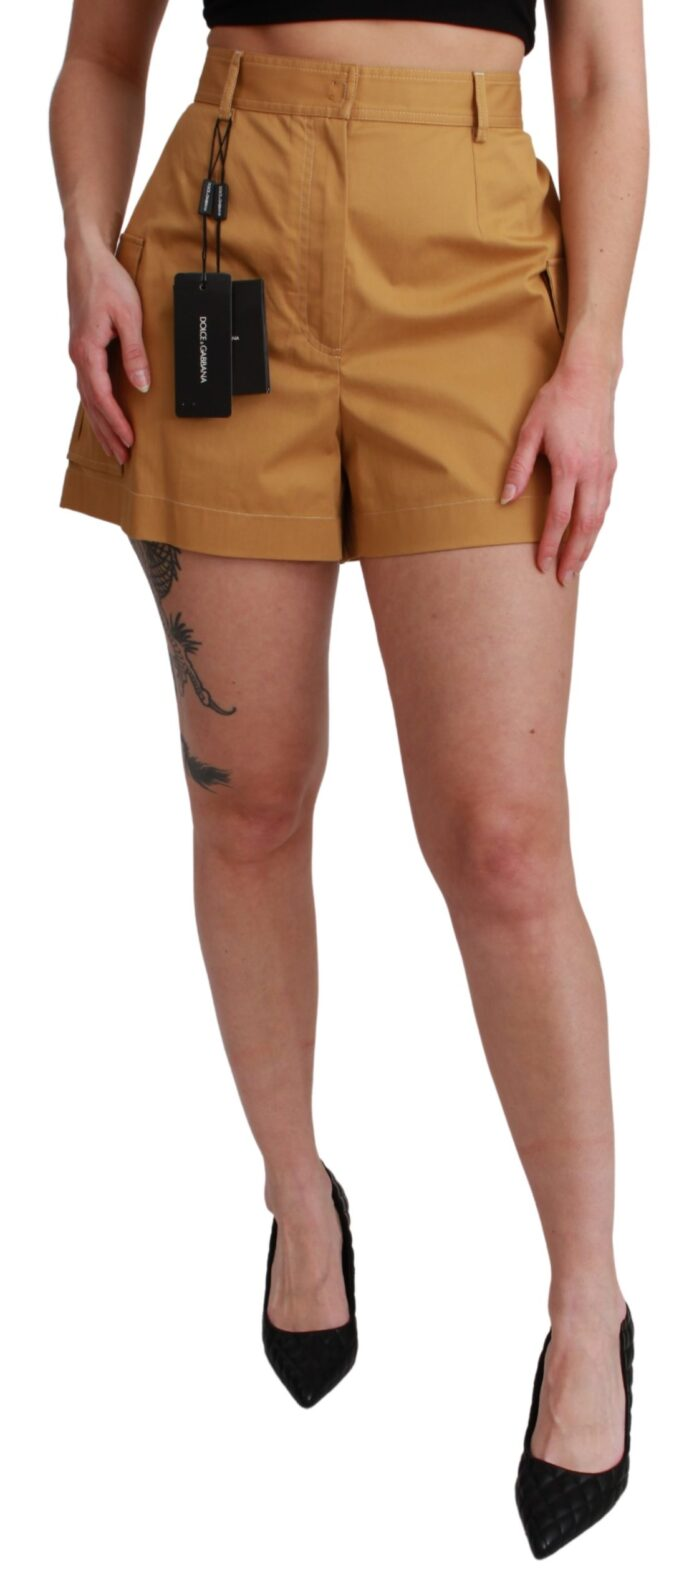 WOMEN SHORTS, Fashion Brands Outlet